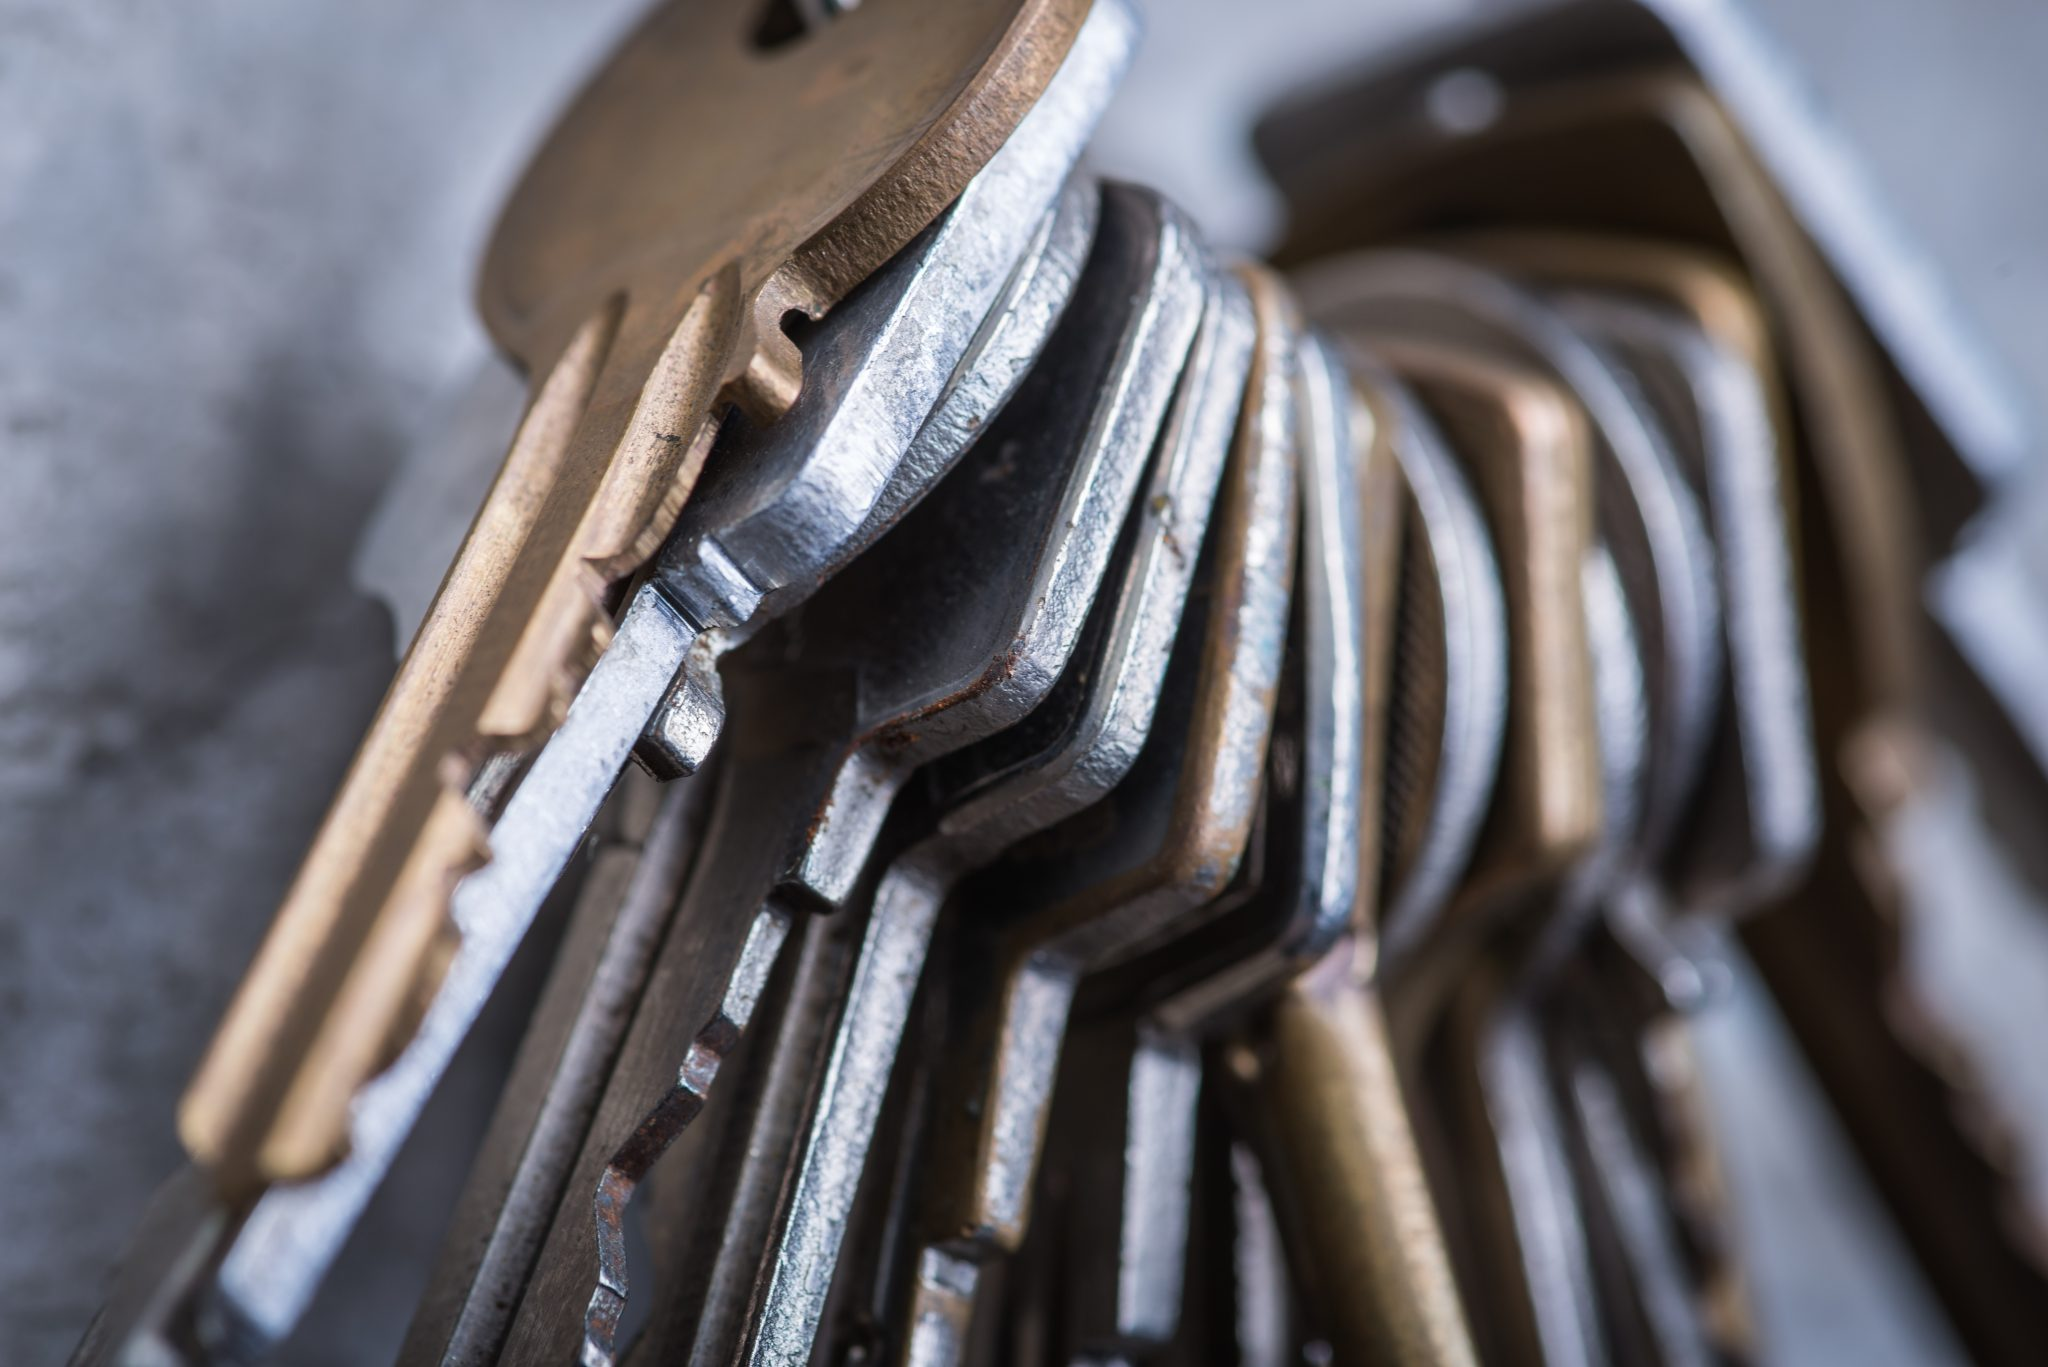 A locksmith is a metal master